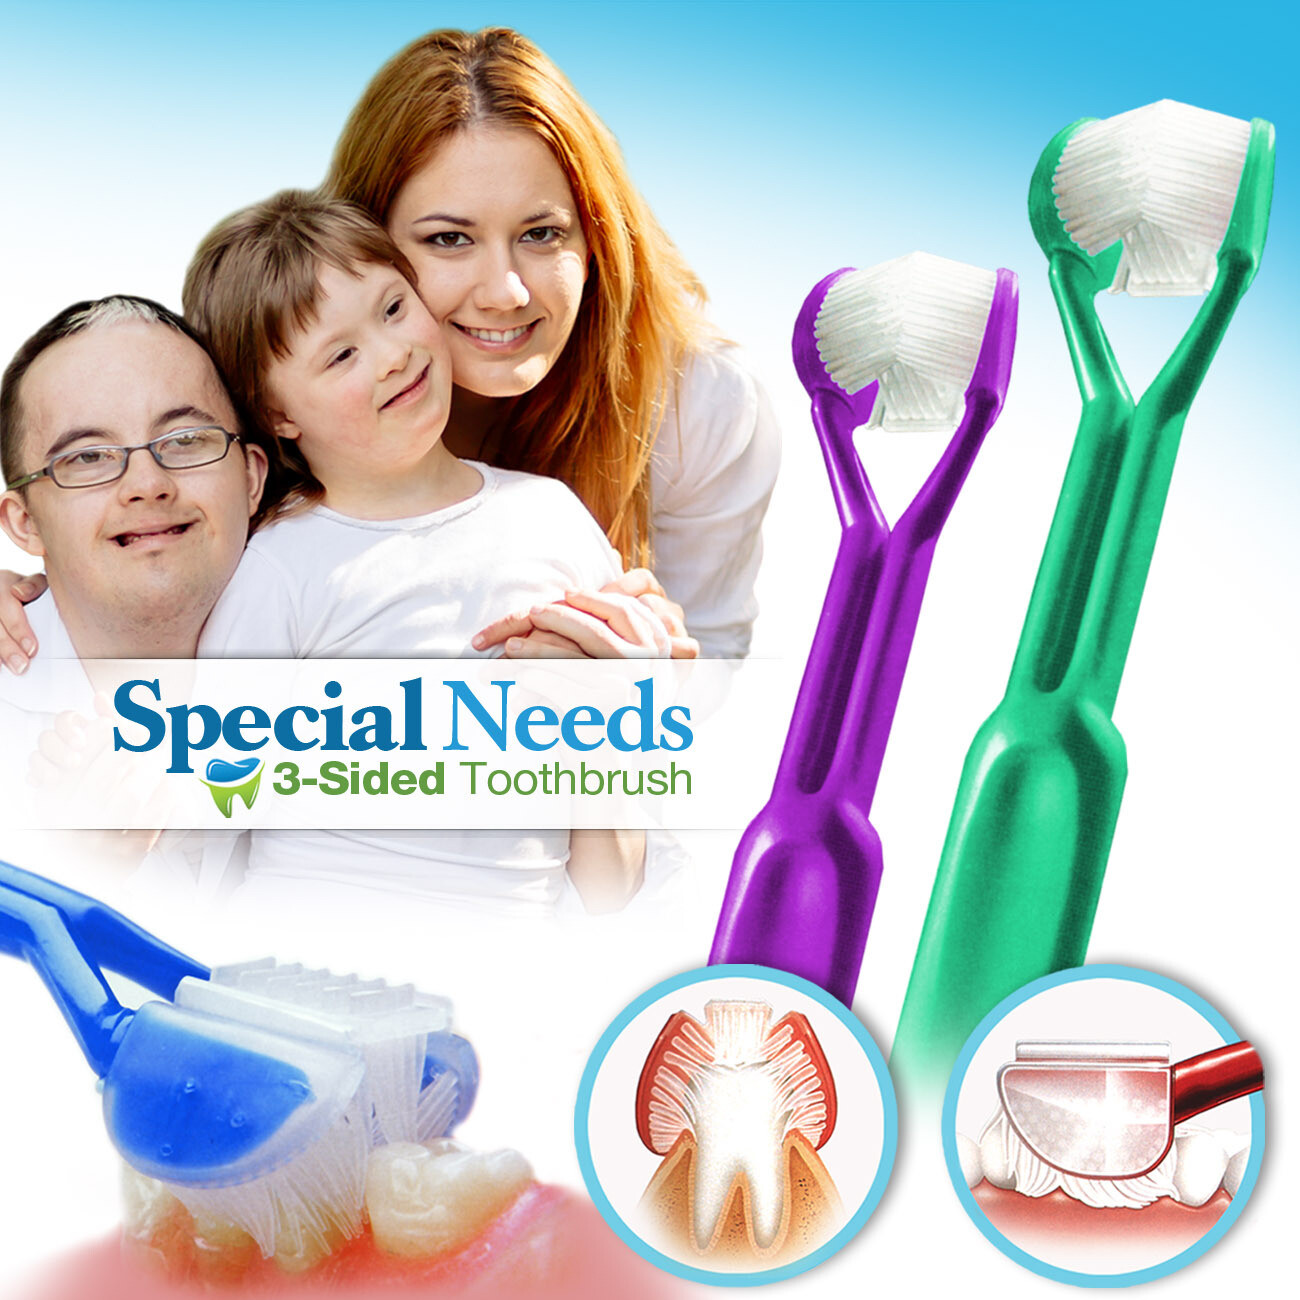 2-PK :: DenTrust 3-Sided Toothbrush :: Caregivers & Assisted Brushing for Special Needs  :: Fast, Easy & More Effective :: Complete Dental Care